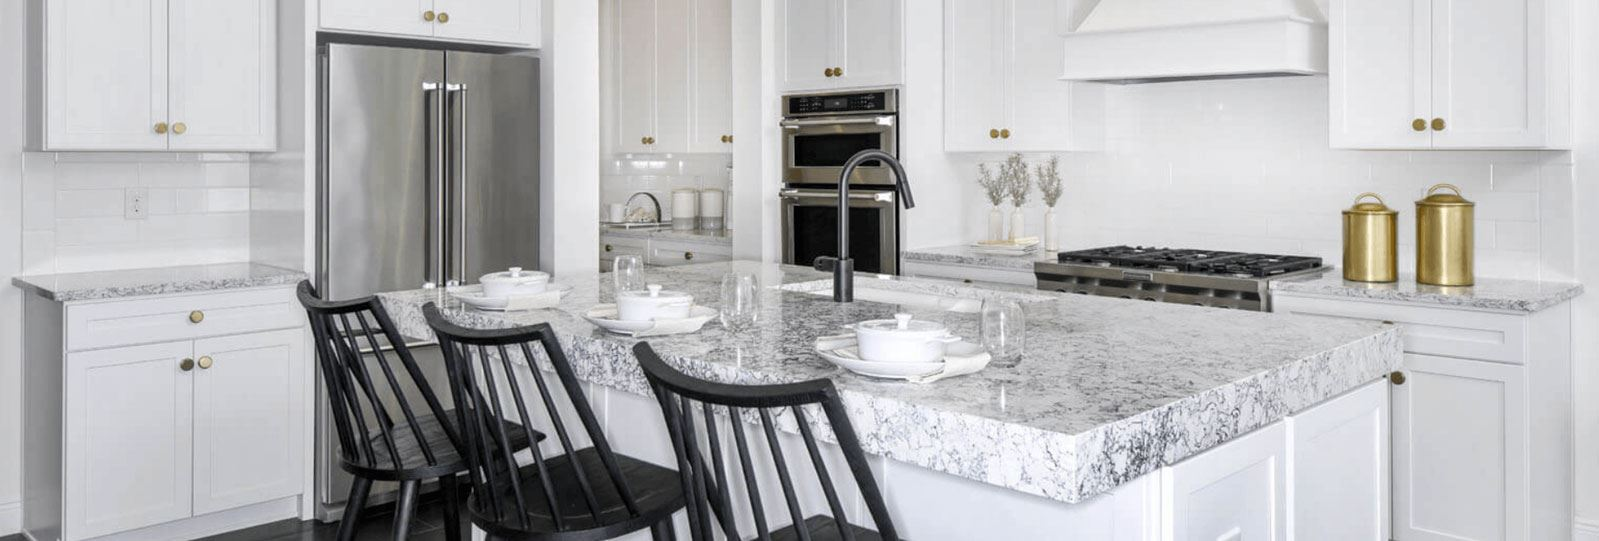 Kitchen of the Savannah model home in Bexley.